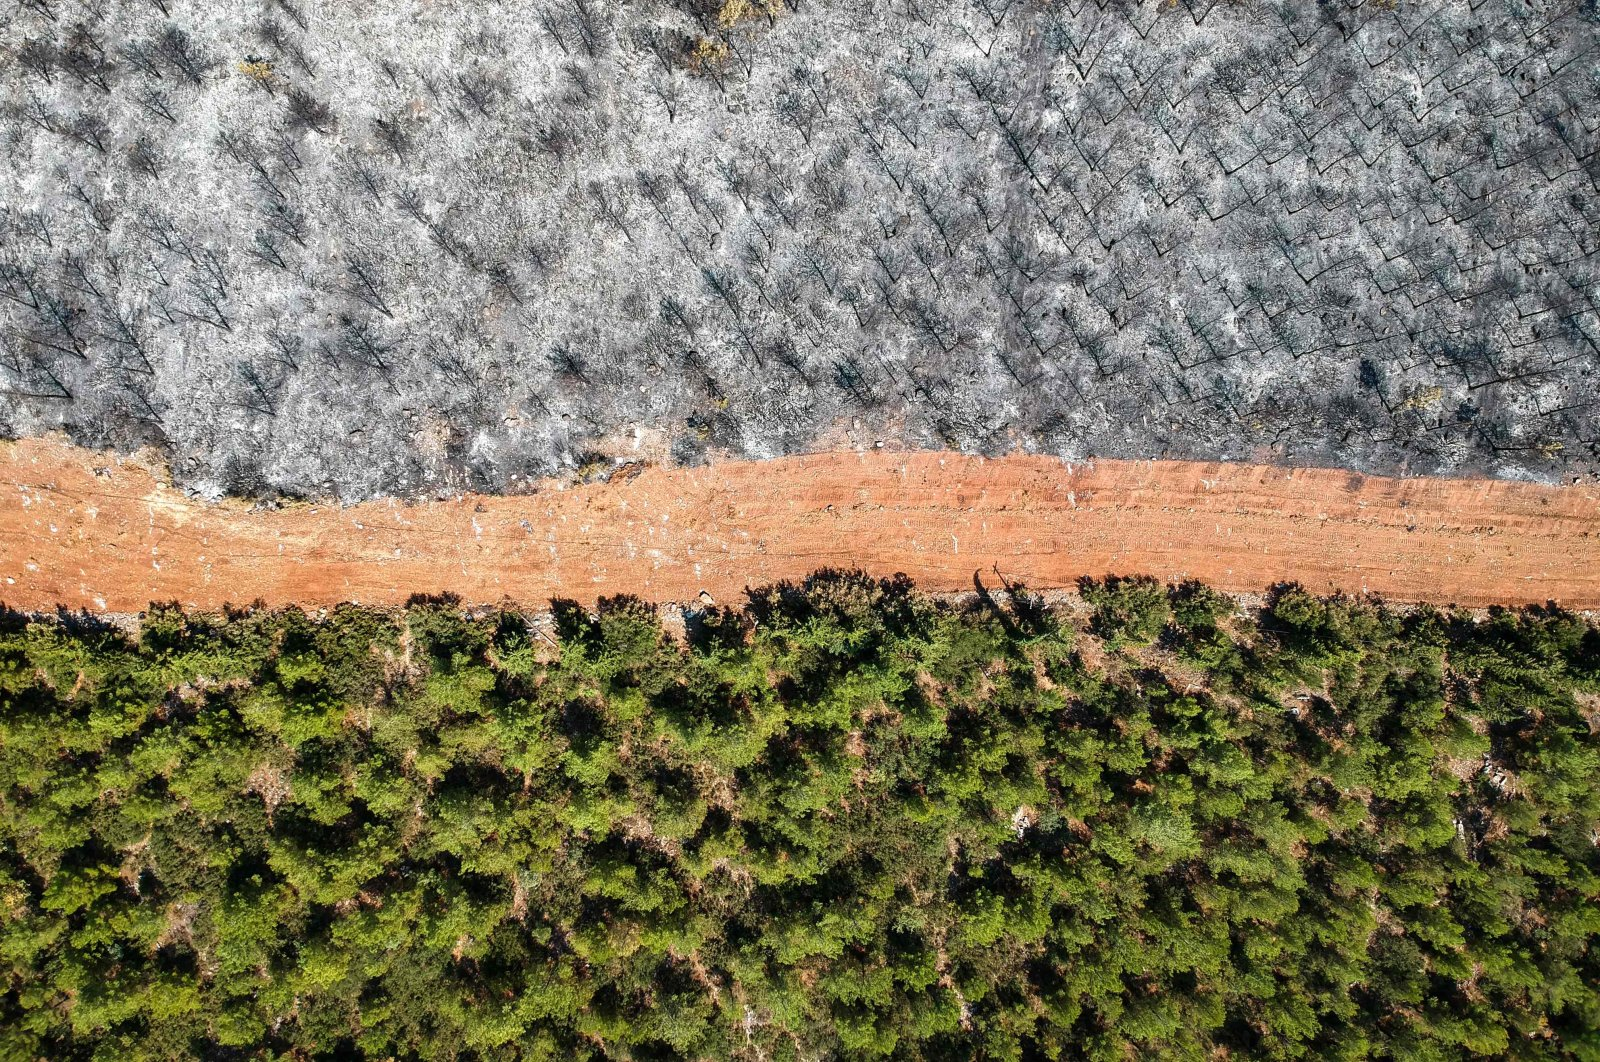 An aerial picture of a track separating burnt trees from a lush, untouched forest in Muğla, as the country struggles against its deadliest wildfires in decades, Muğla, Turkey, on Aug. 7, 2021. (AFP Photo)